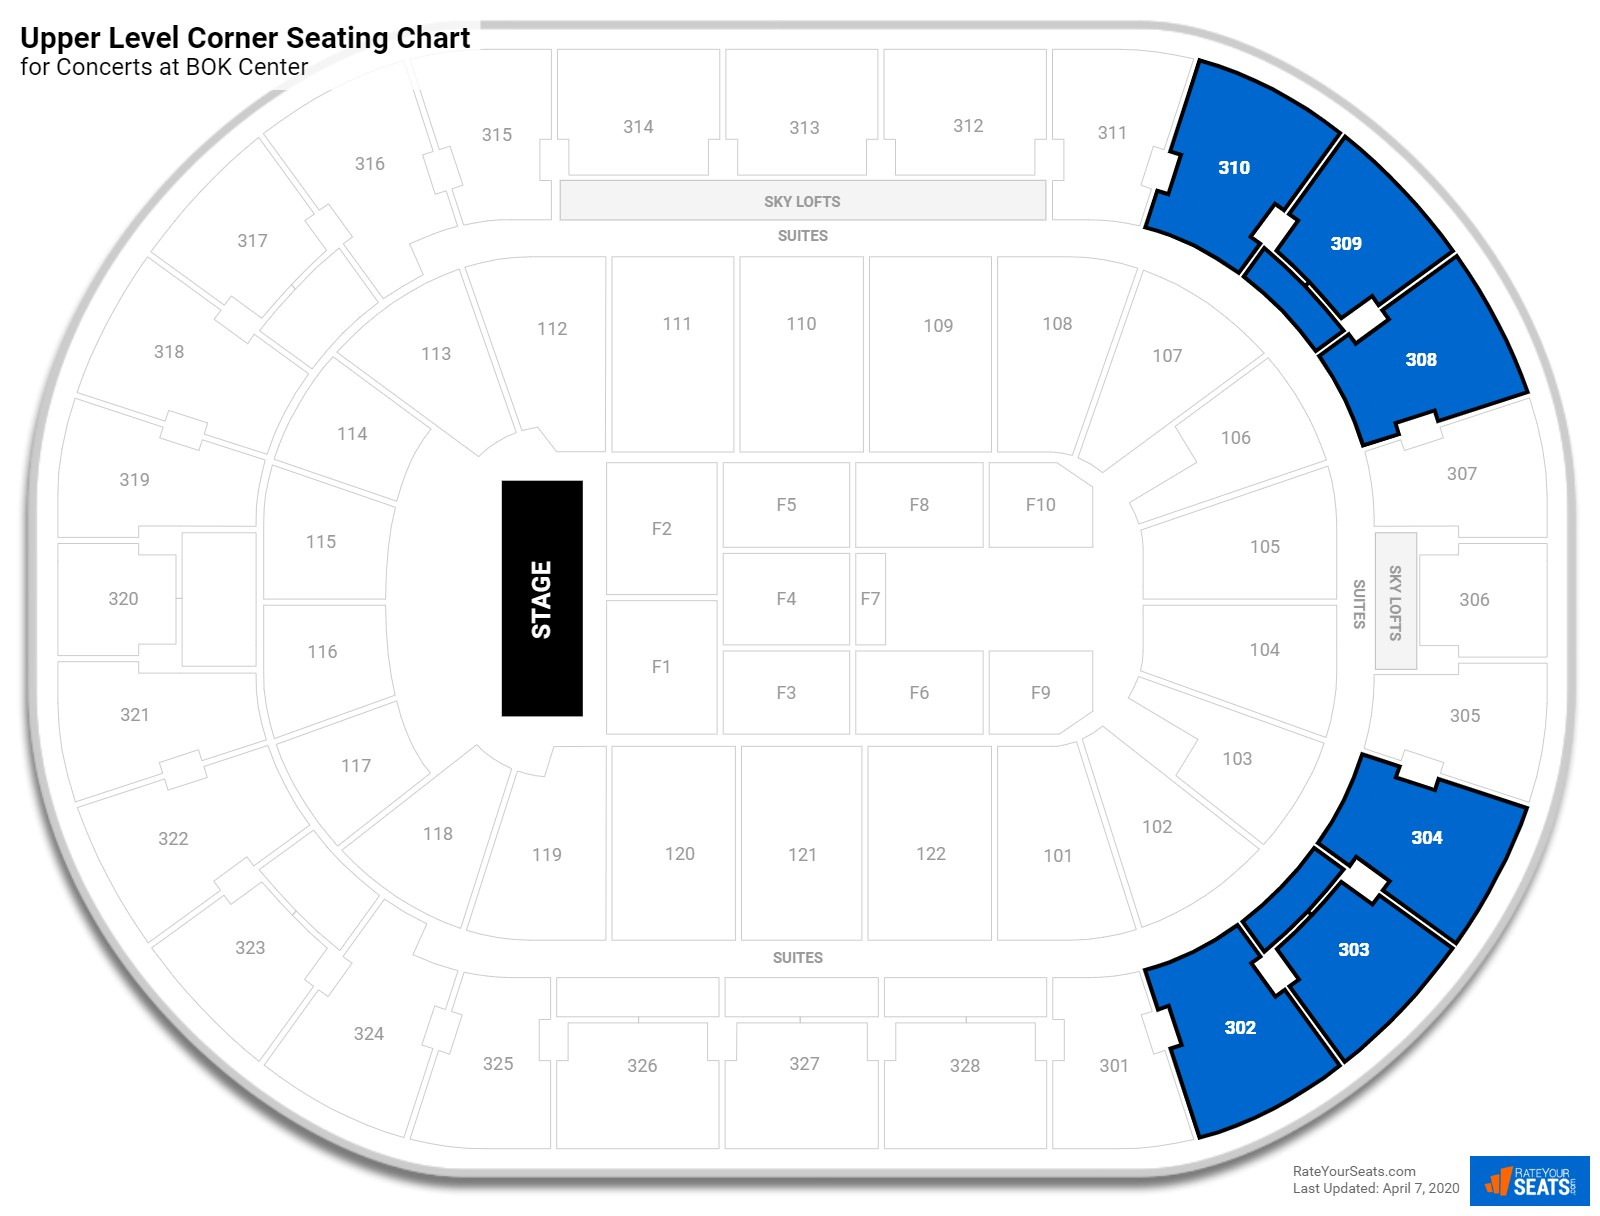 Bok Center Seating For Concerts  Rateyourseats throughout Bok Center Seating Chart Detailed